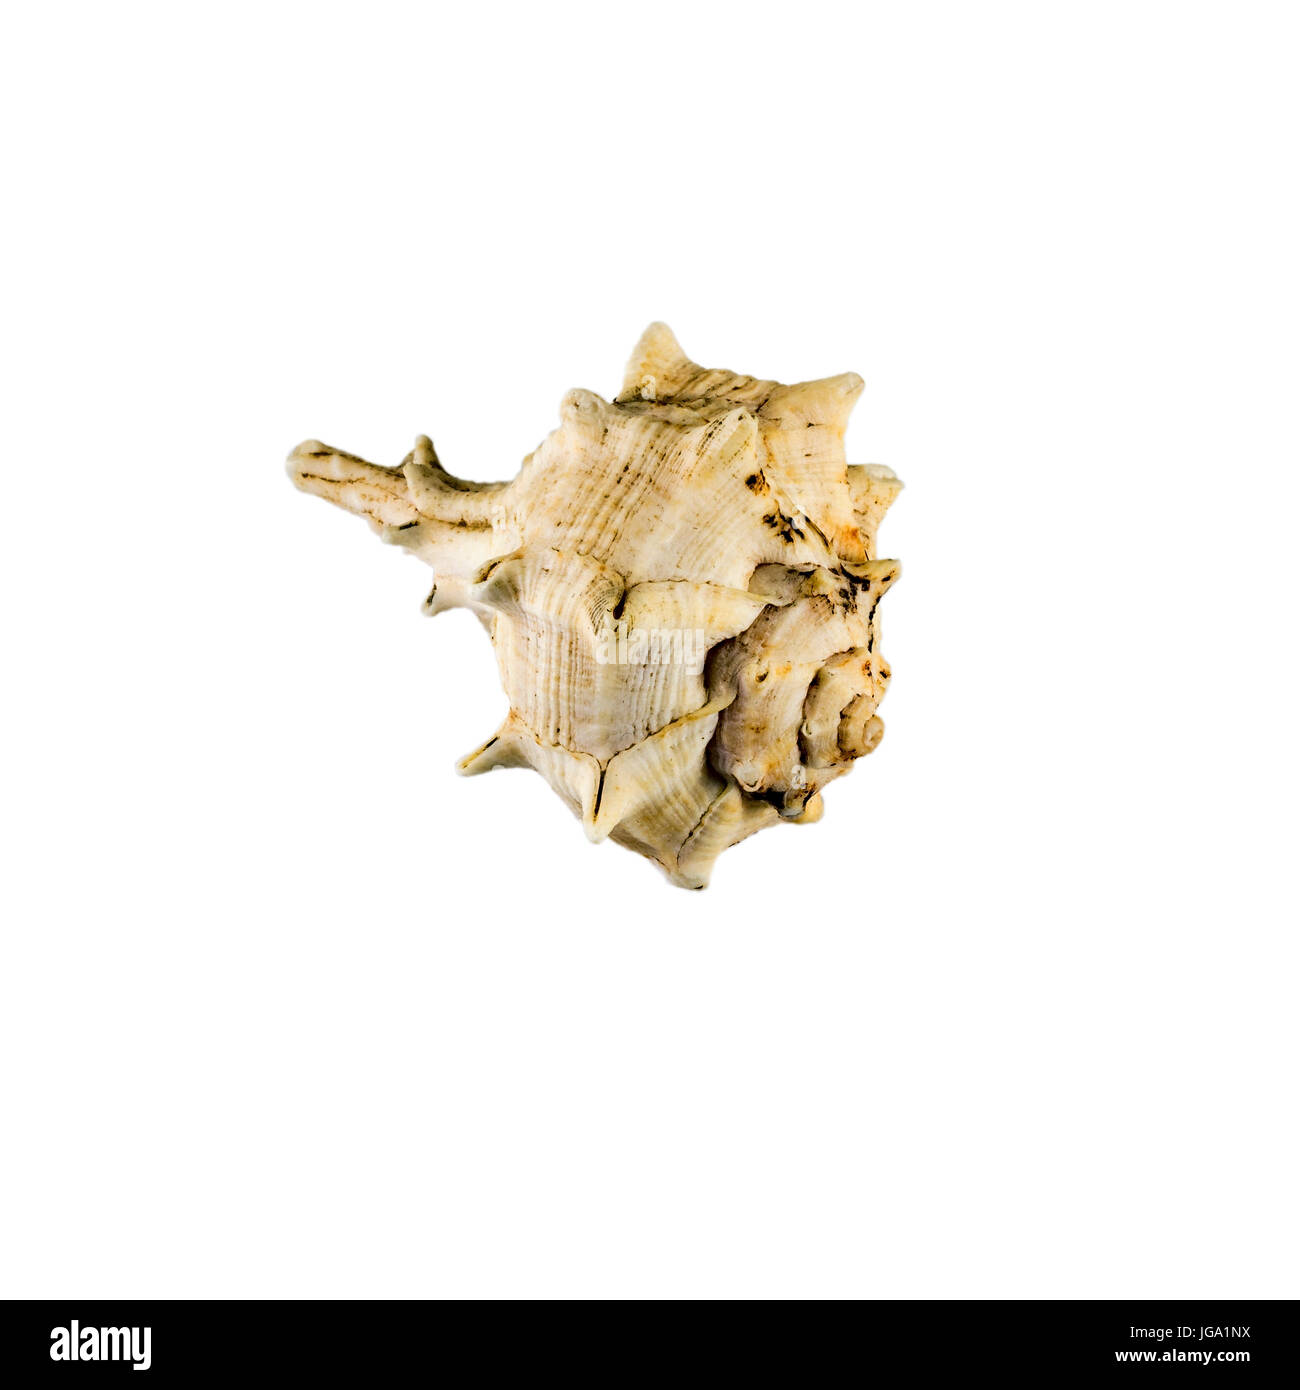 Beautiful sea shell,Drupa rubusidaeus, isolated on white background view from the top .For posters, sites, business - Stock Image